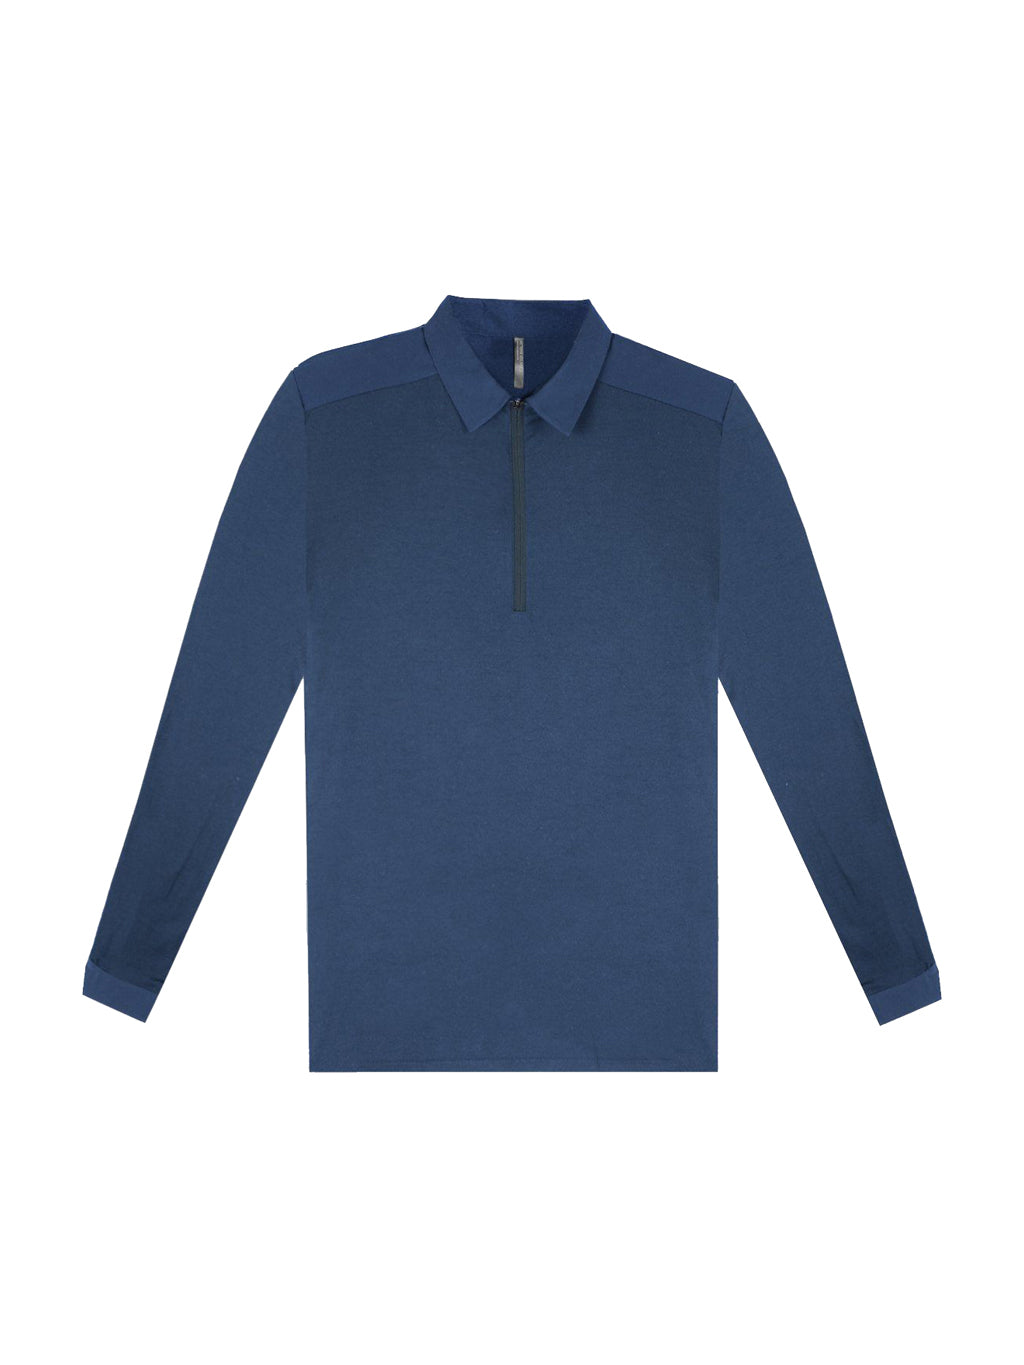 Navy Frame Long Sleeve Polo T-Shirt